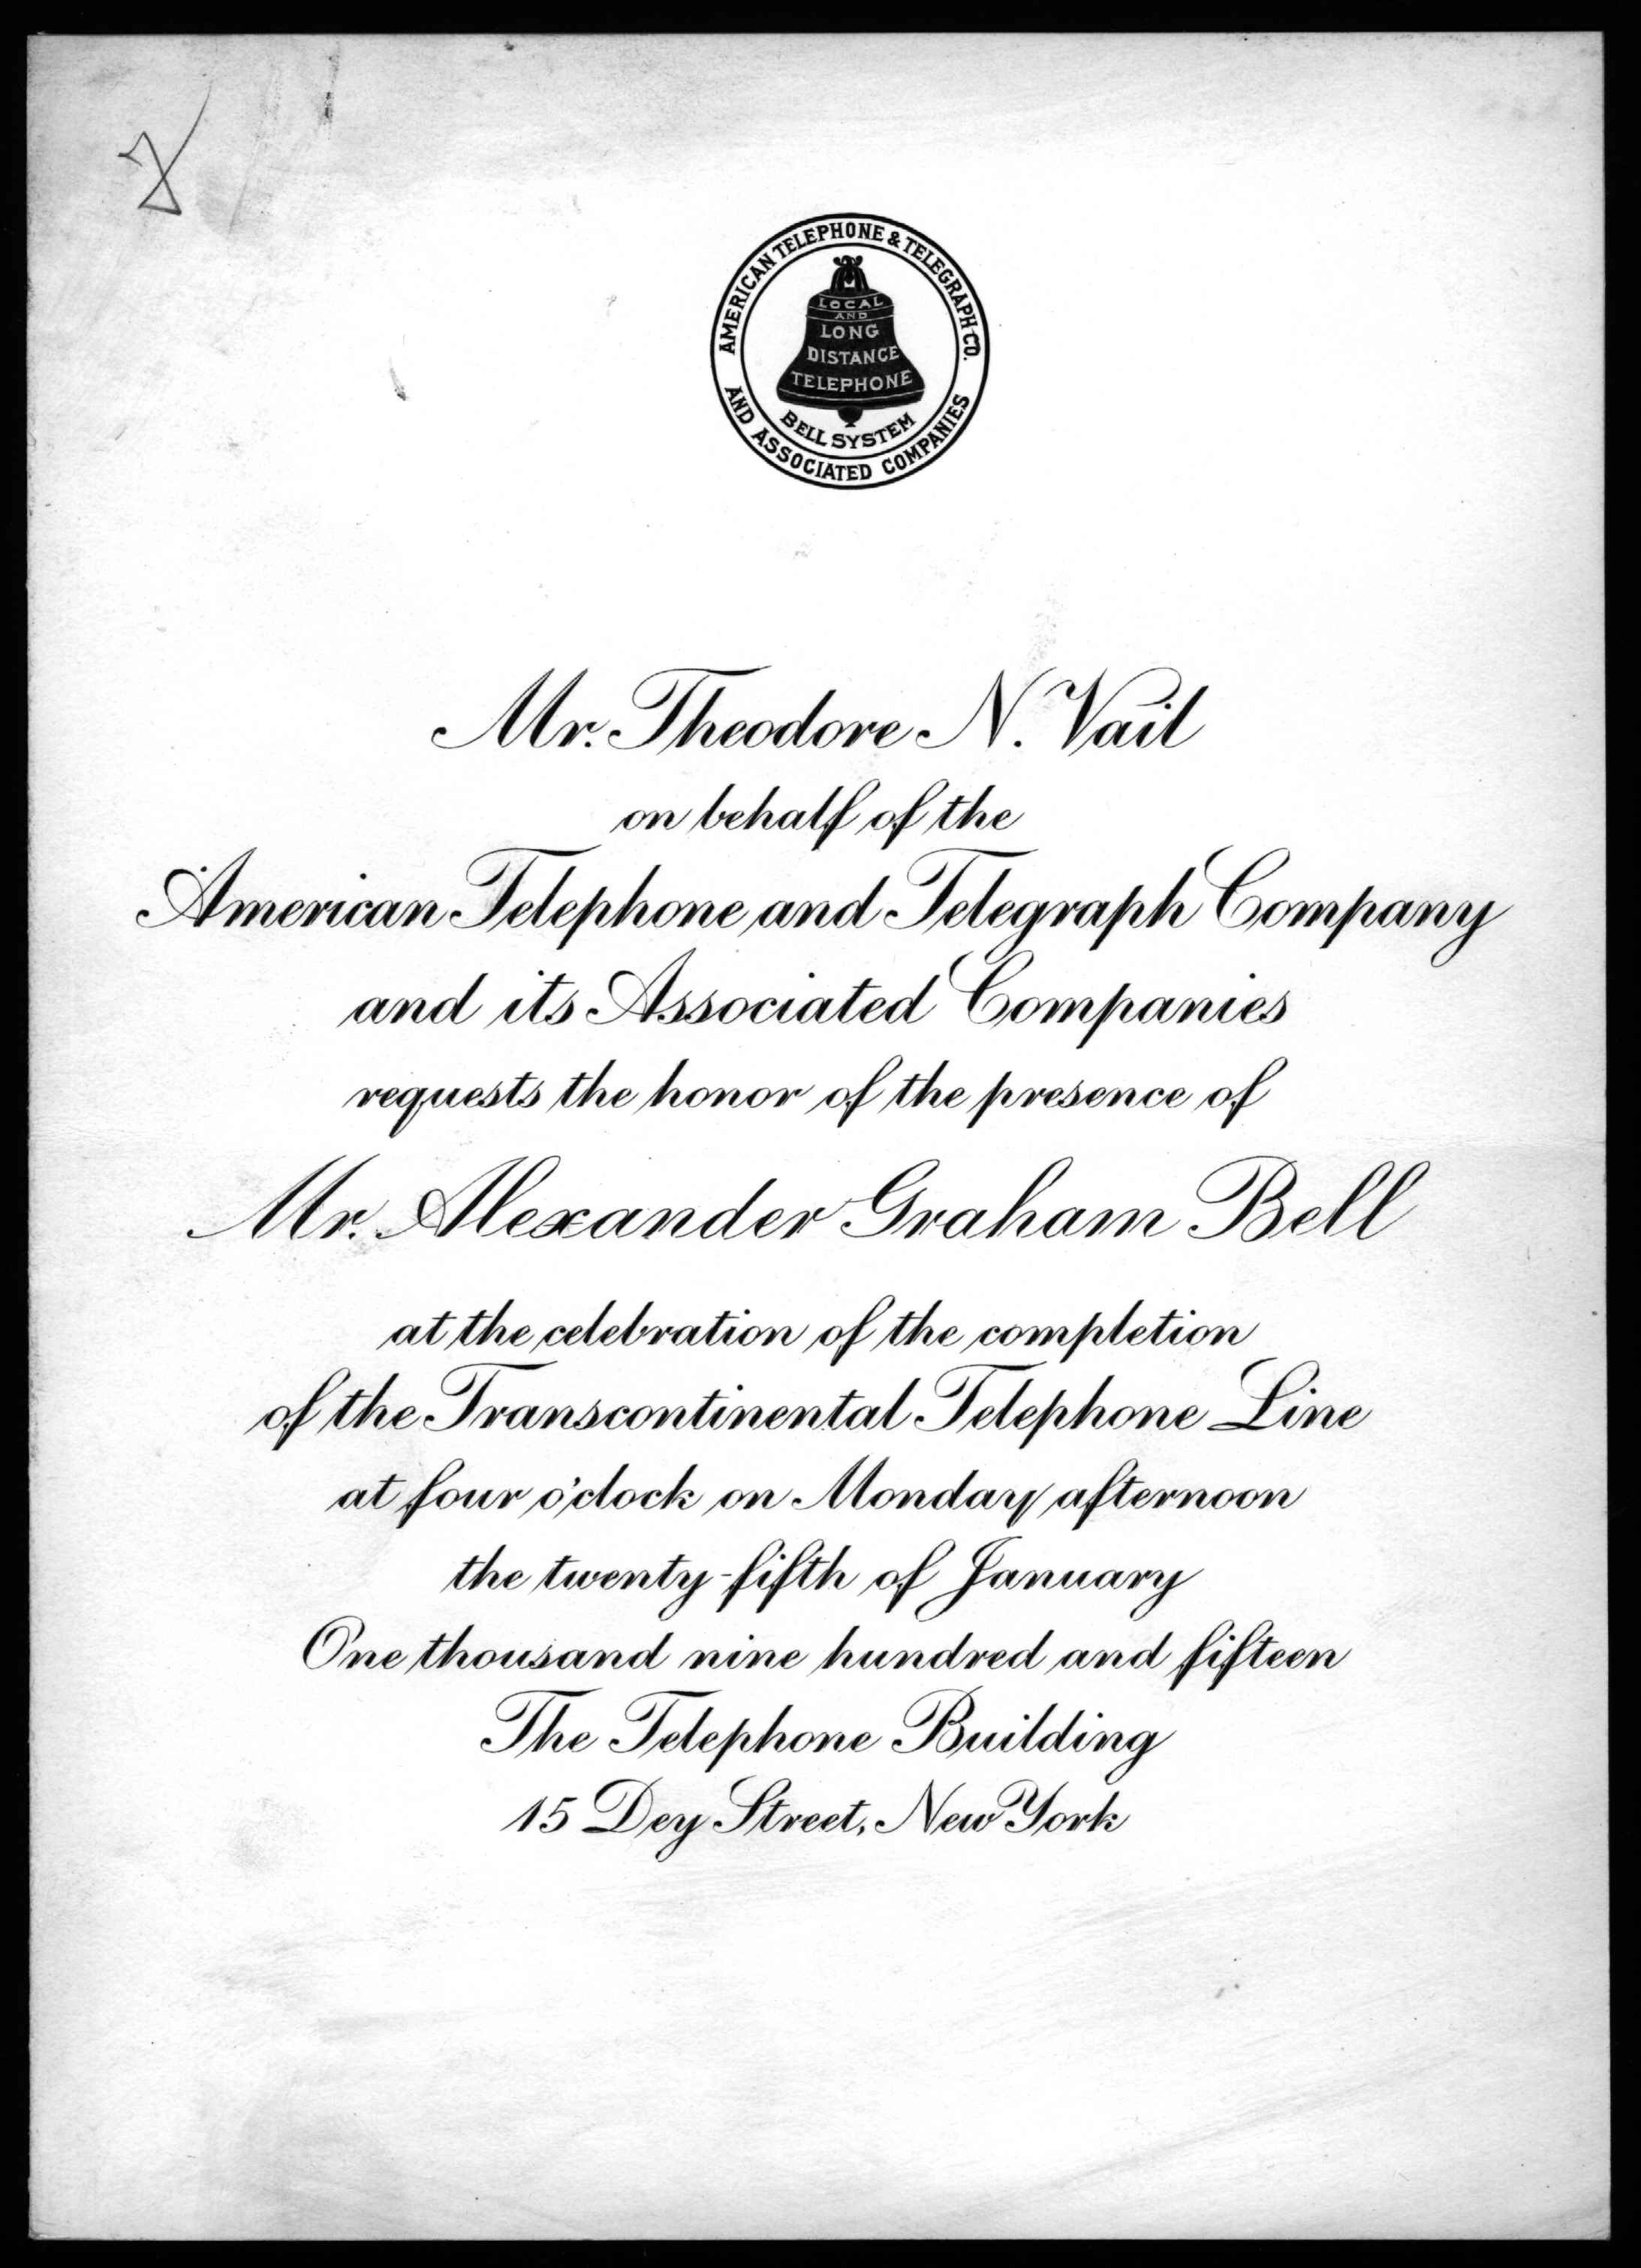 Fileinvitation from theodore n vail to alexander graham bell fileinvitation from theodore n vail to alexander graham bell 1915 transcription stopboris Images